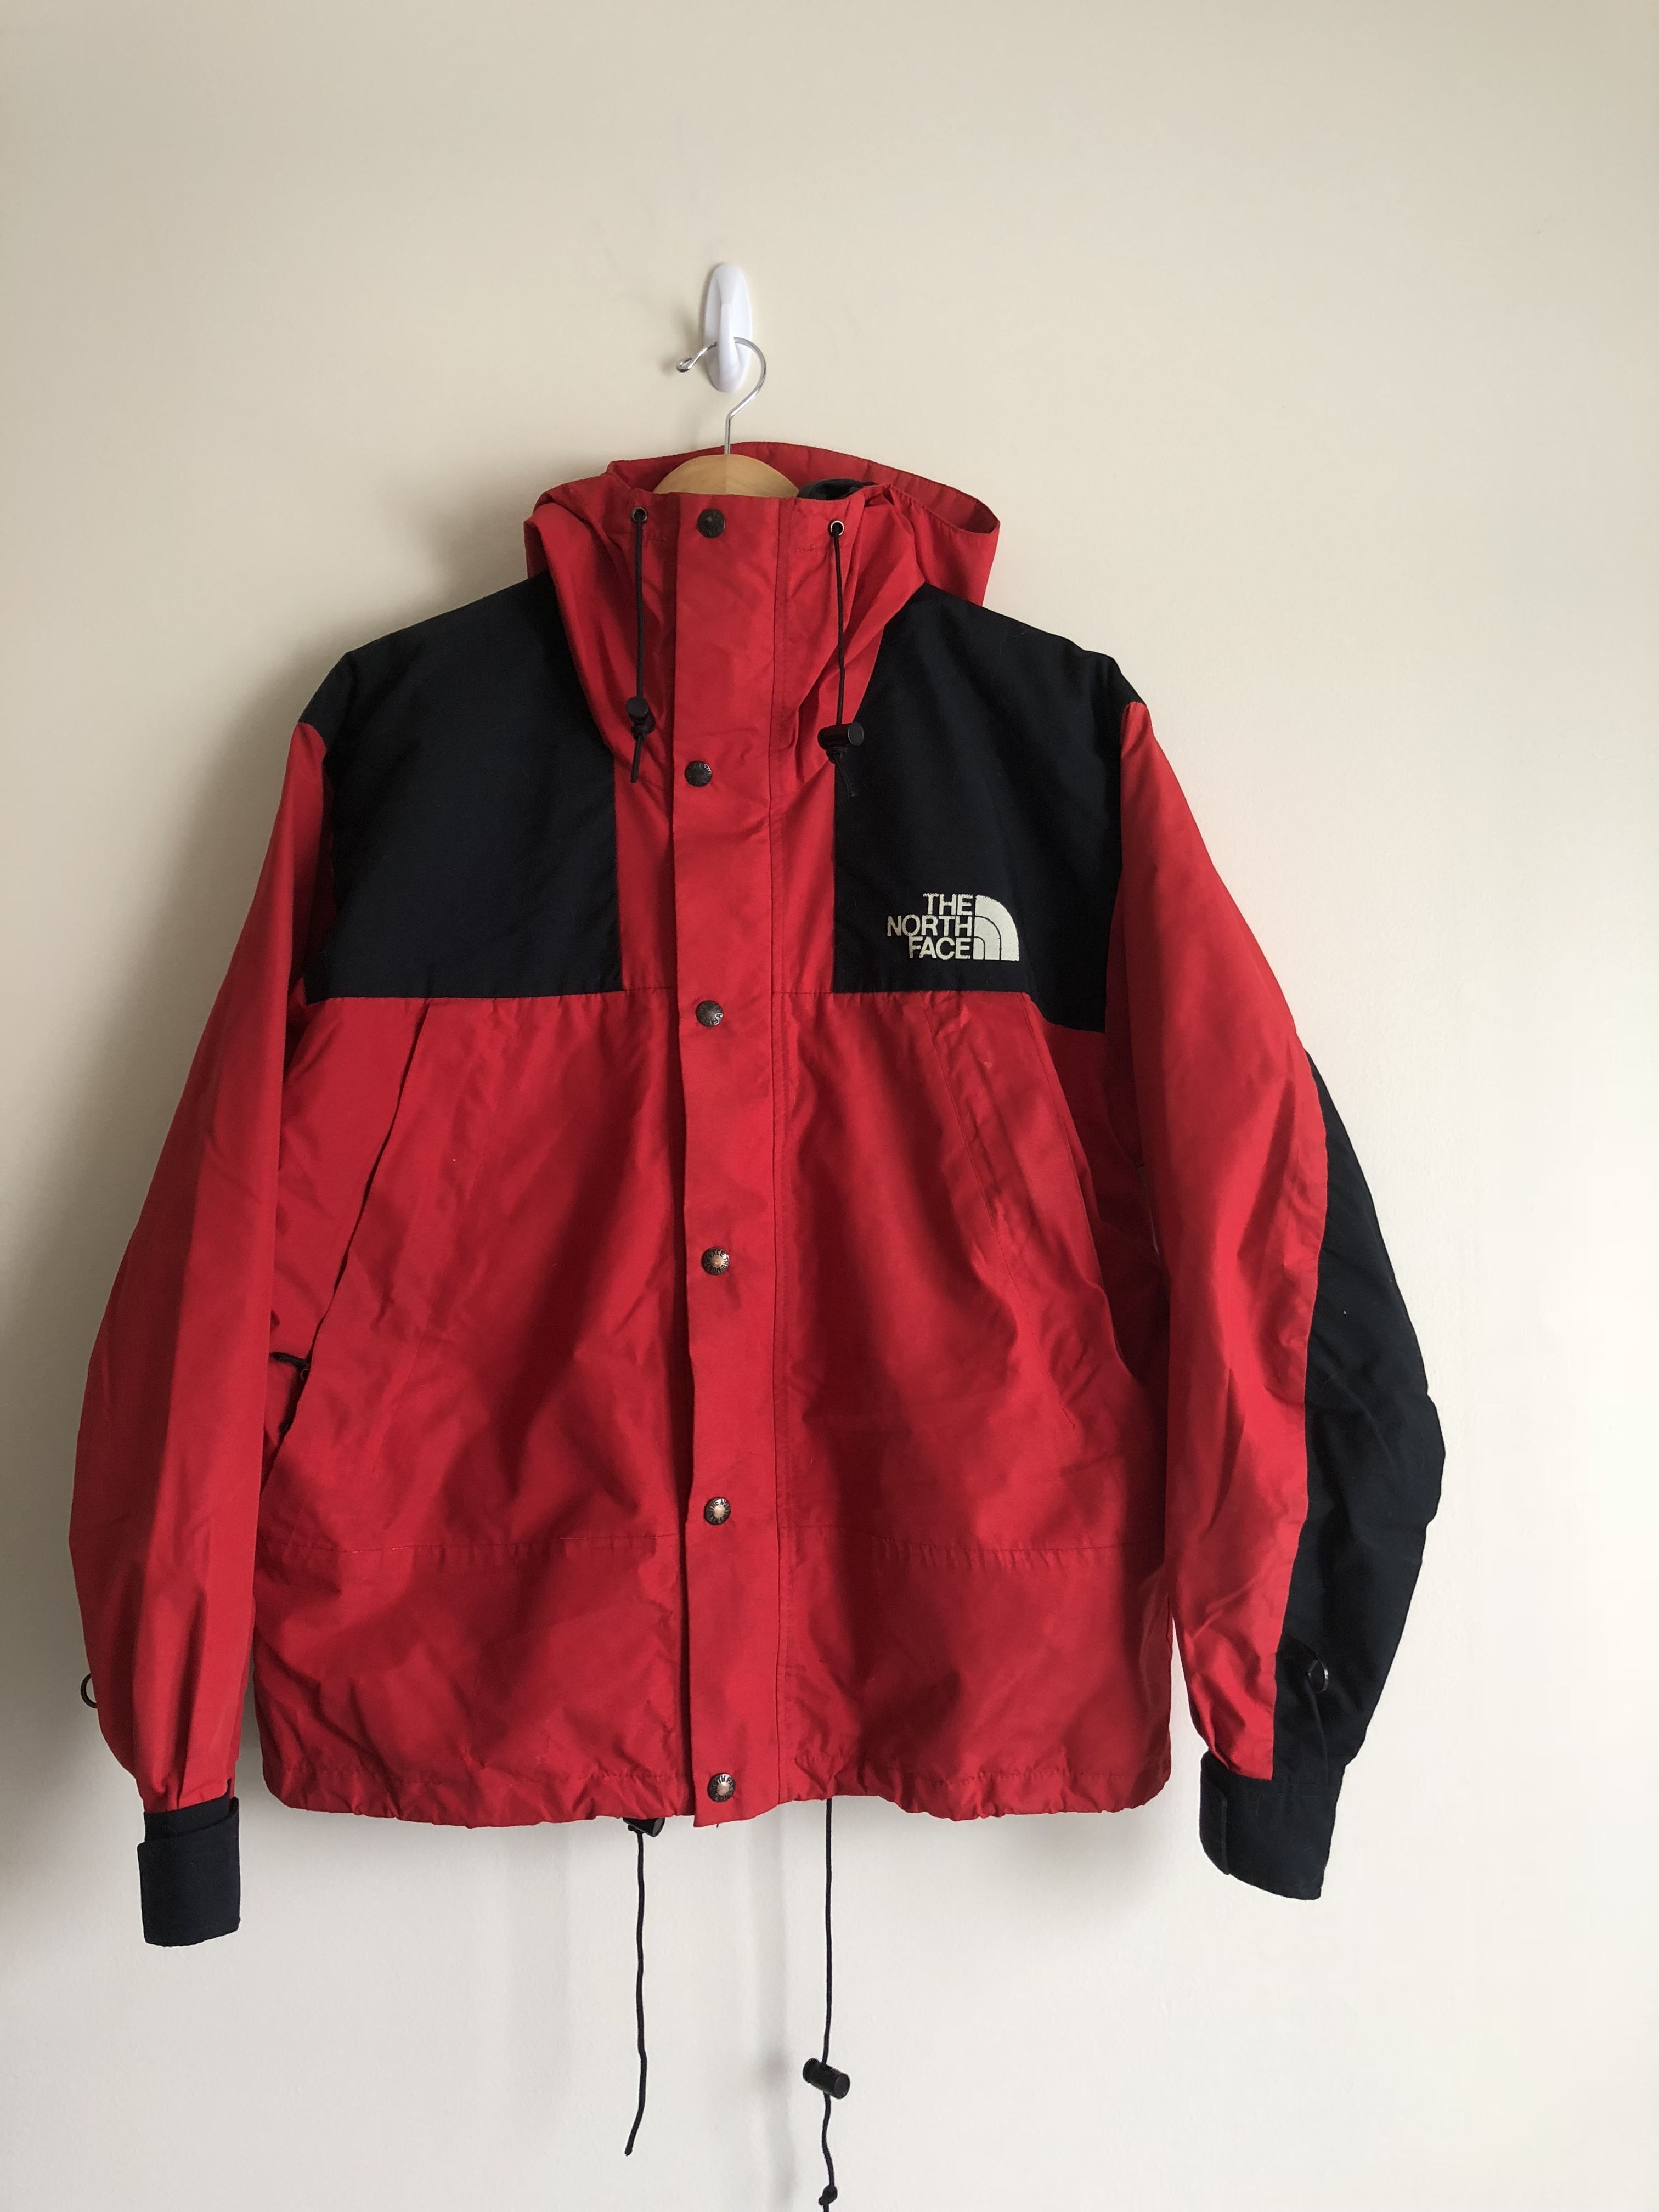 1985 Windy Pass Mountain Jacket North Face Jacket Jackets North Face Gear [ 4032 x 3024 Pixel ]